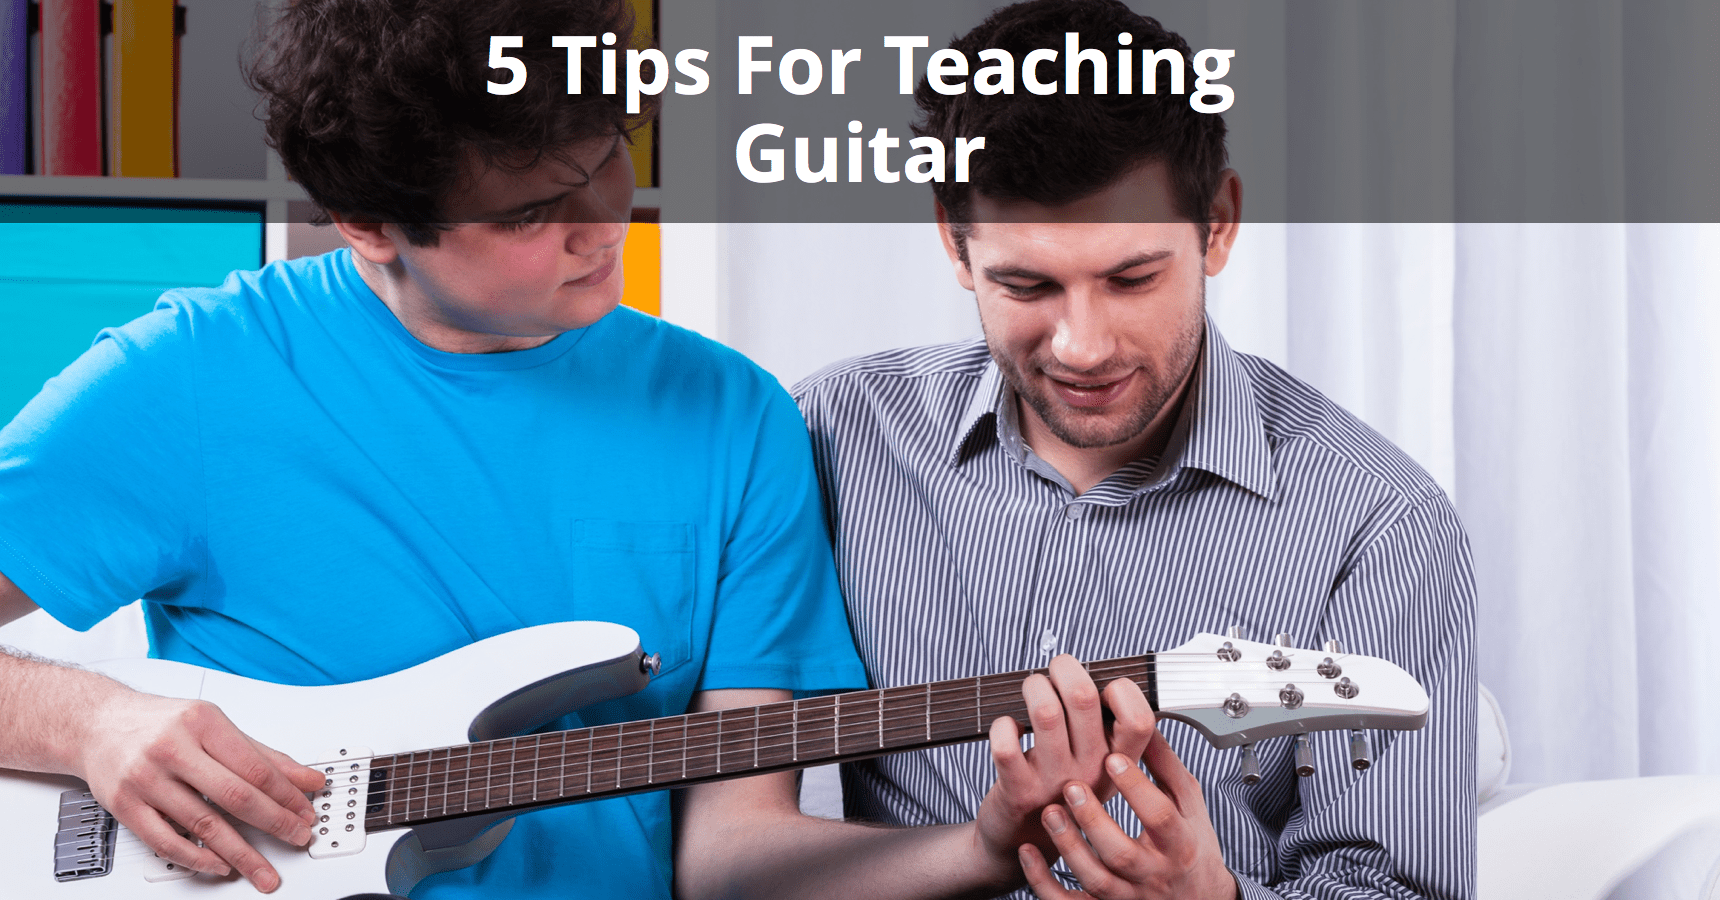 5 Tips For Teaching Guitar Musician Tuts How To Read Chord Diagrams Self Taught Lessons